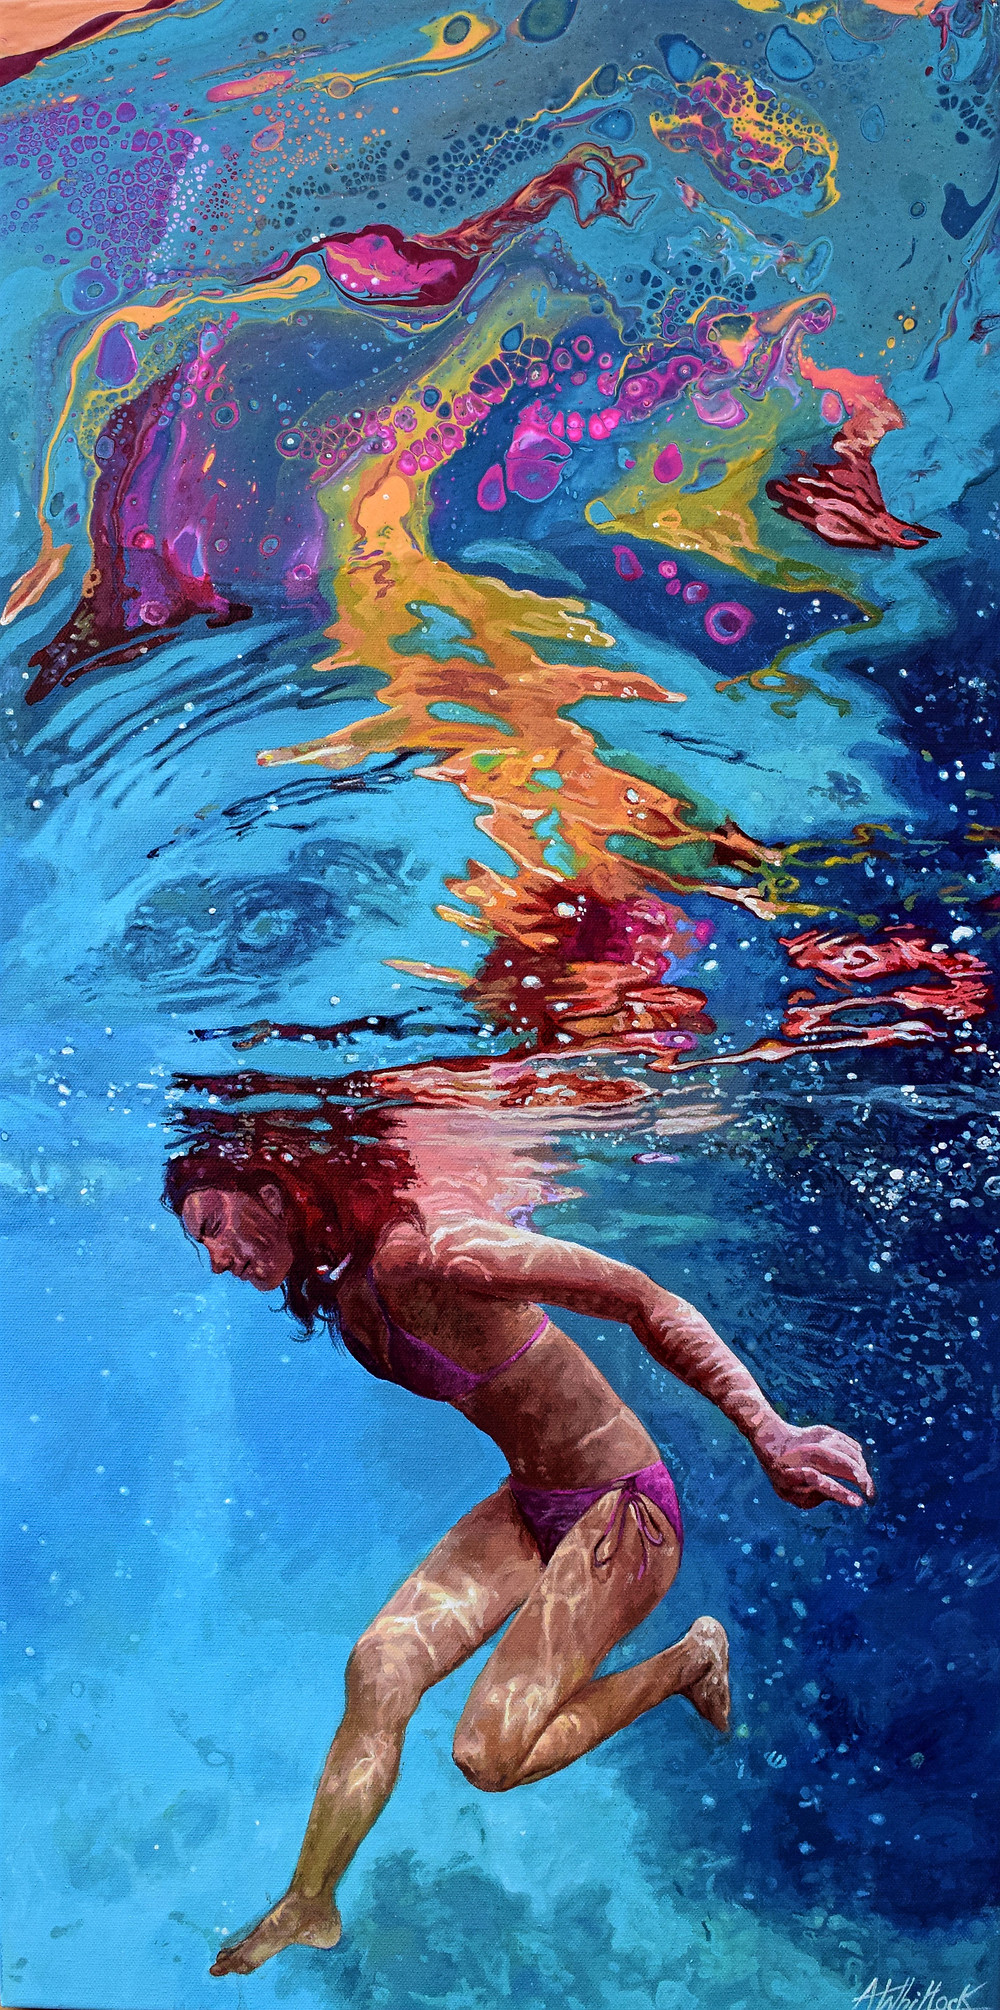 painting, contemporary artwork, colourful, underwater, swimming, painting